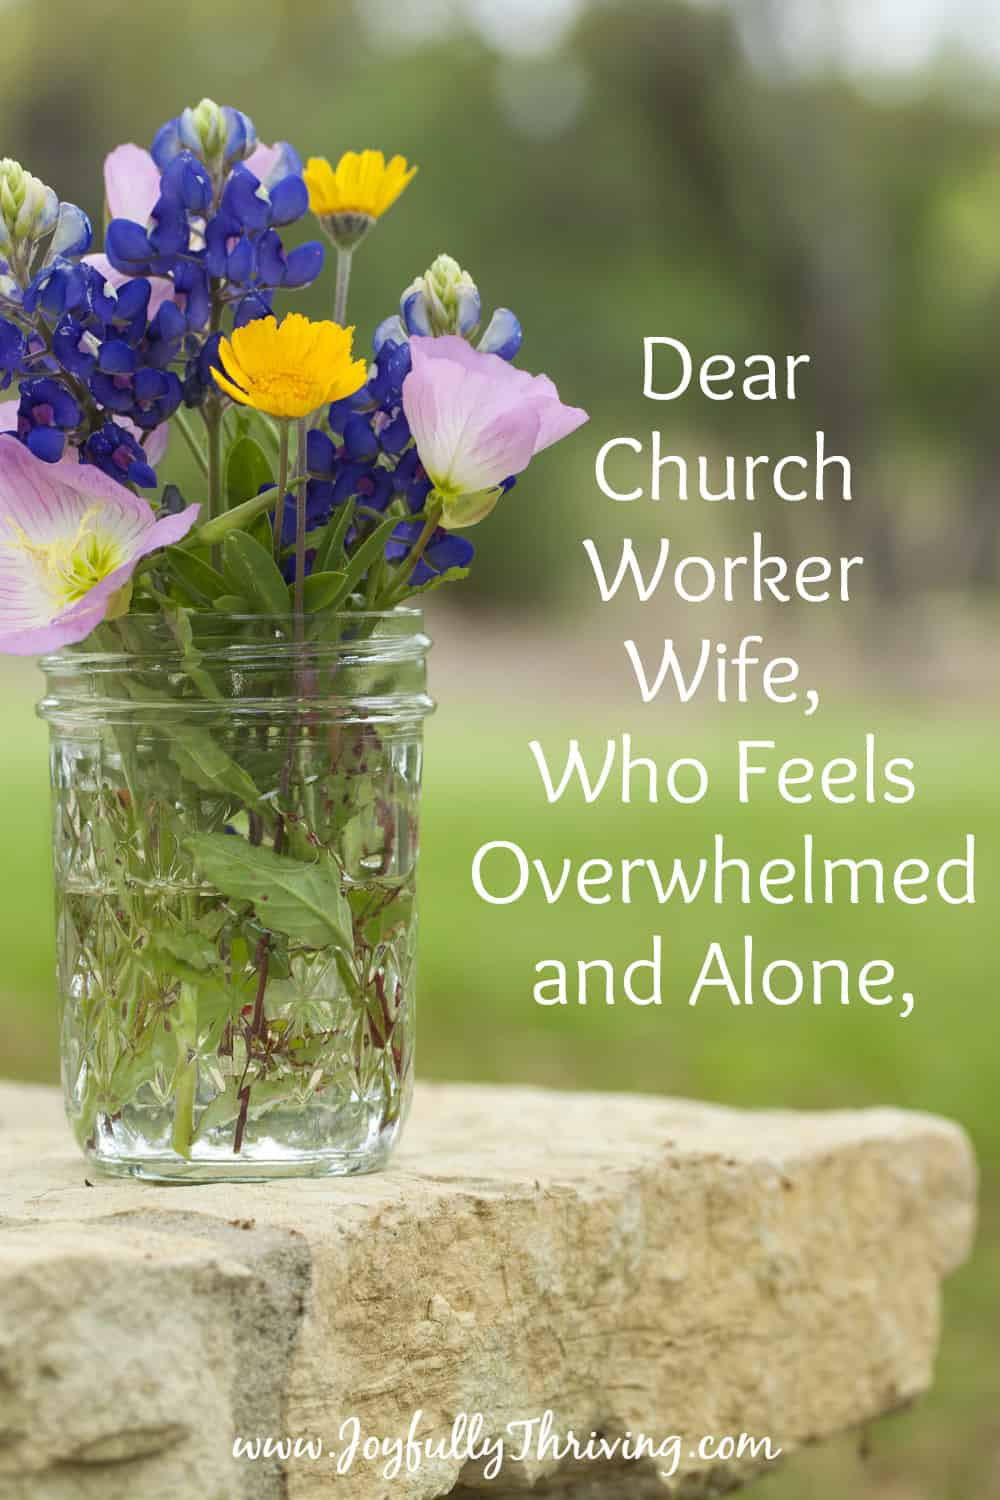 Dear Church Worker Wife Who Feels Overwhelmed and Alone,